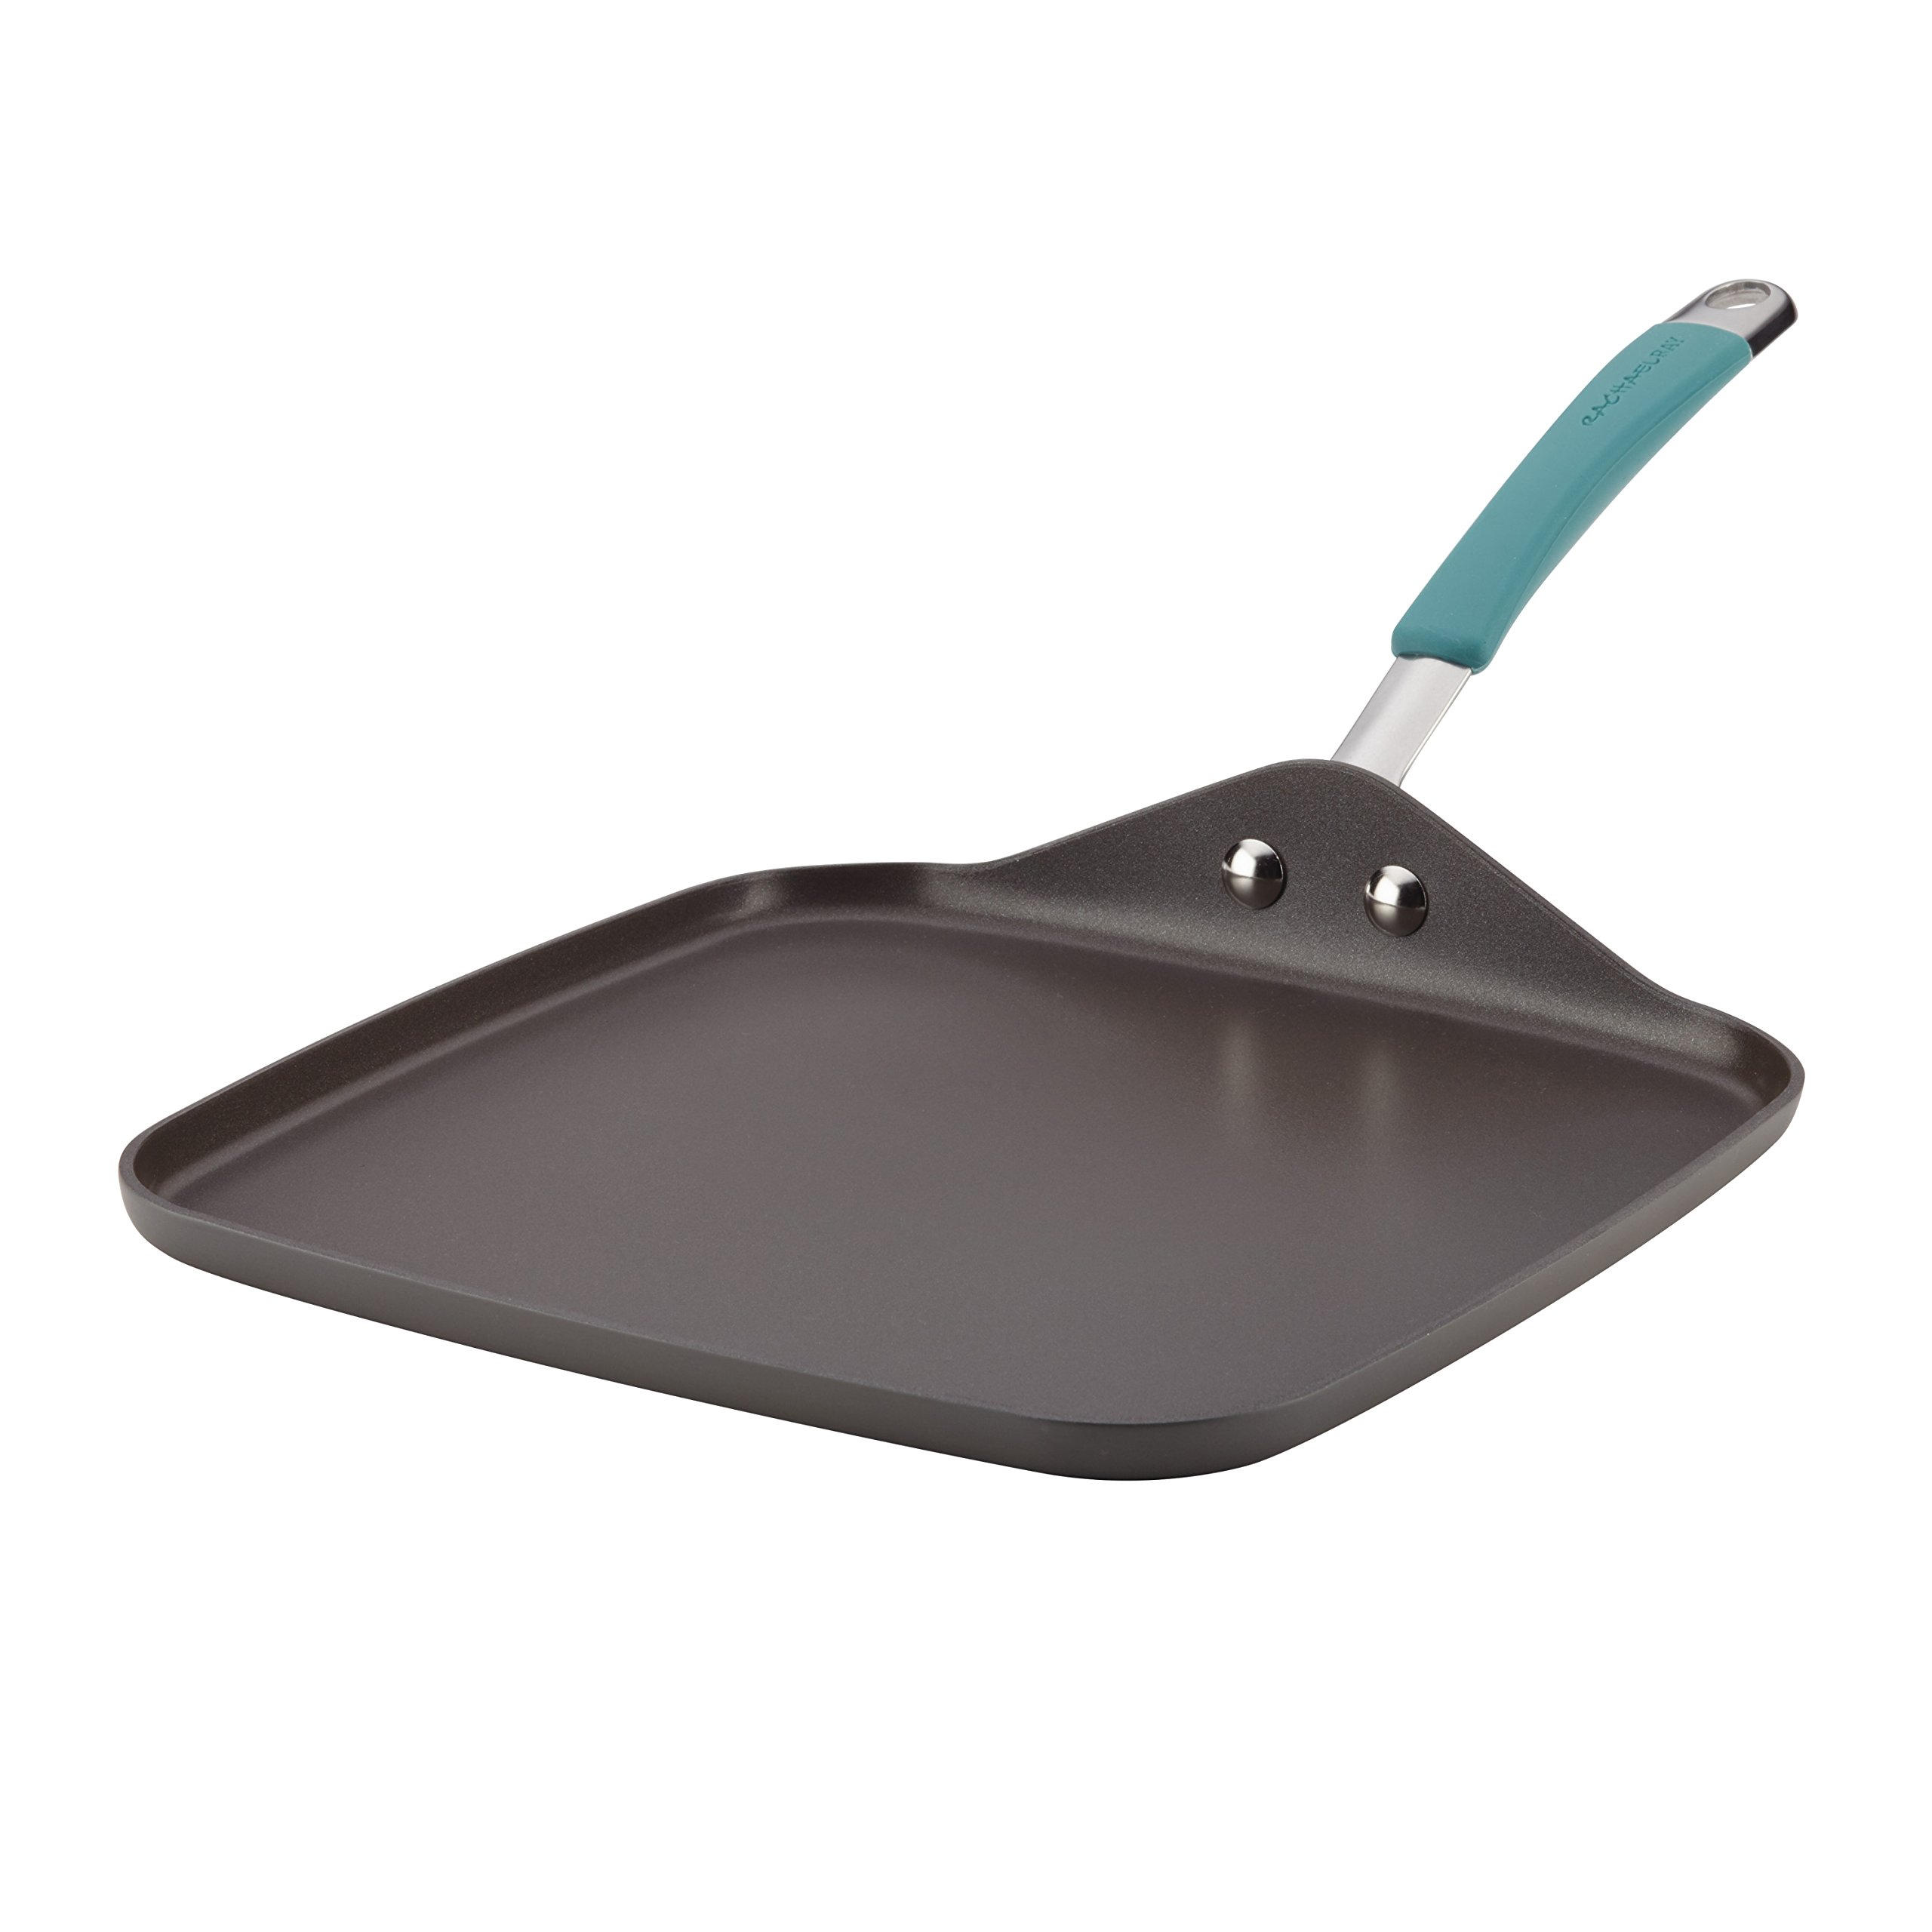 Rachael Ray Cucina Hard Anodized Nonstick Griddle Pan/Flat Grill, 11 Inch, Gray with Agave Blue Handle